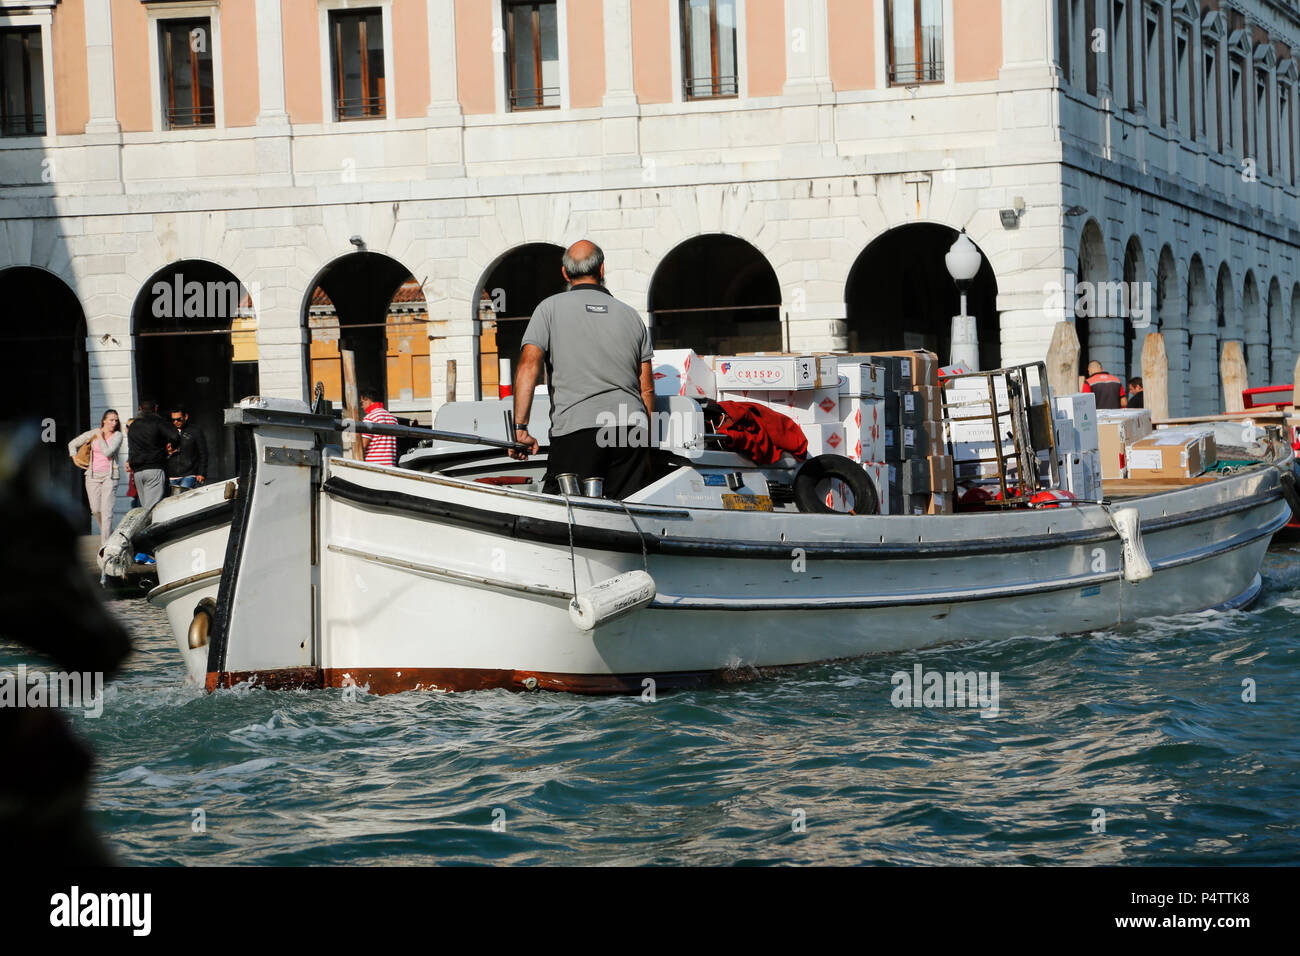 Morning delivery of products by boat on the Grand Canal, Venice, Italy. - Stock Image